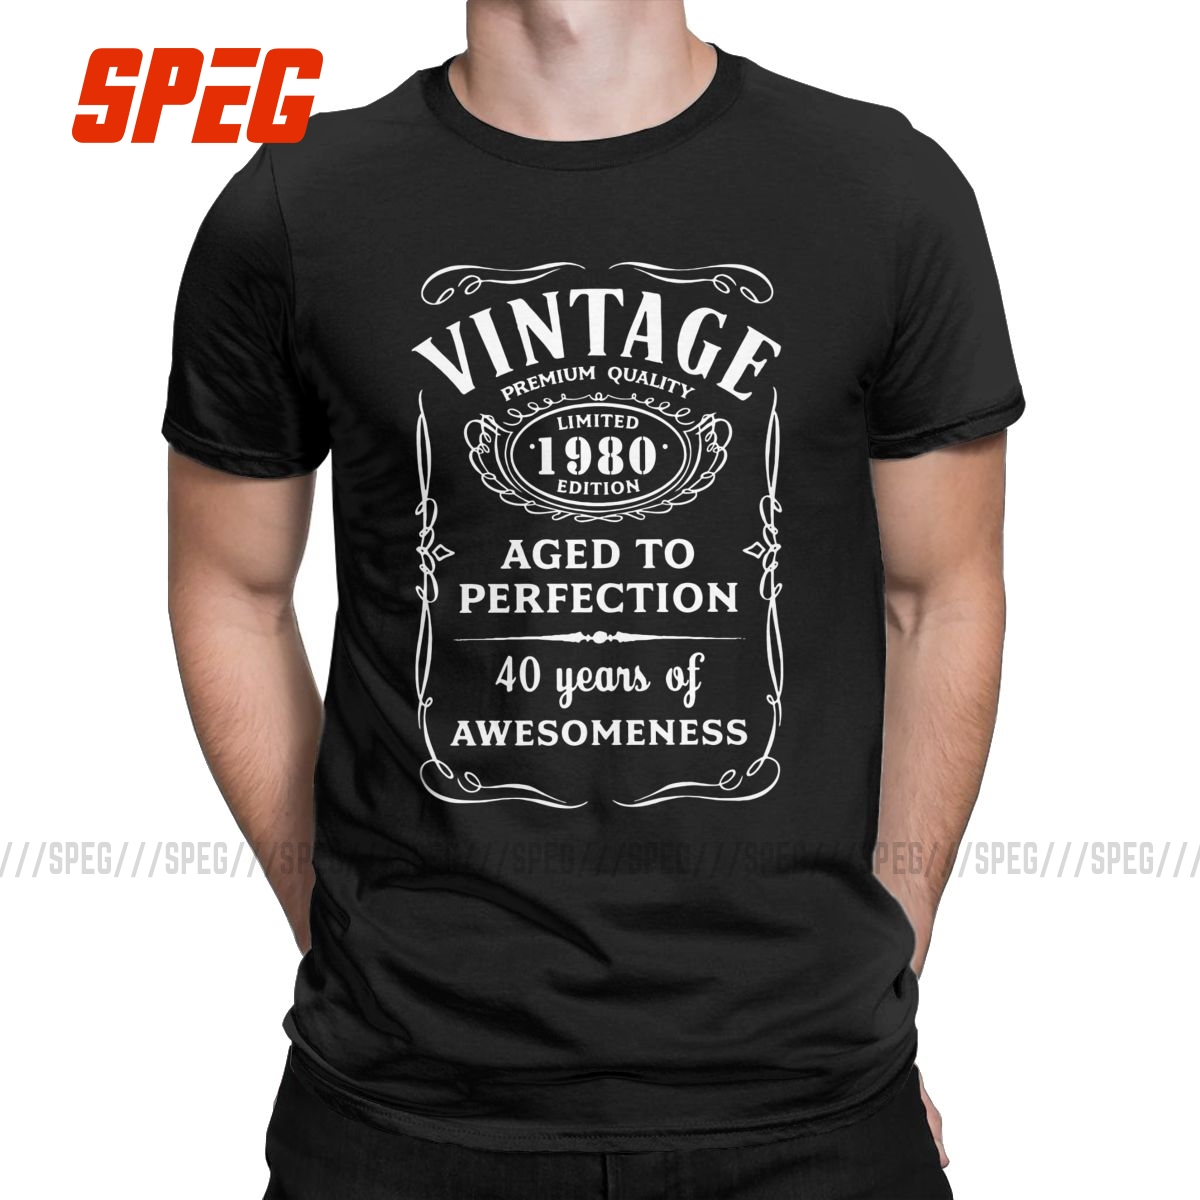 Vintage Limited 1980 Edition T Shirt for <font><b>Men</b></font> Cotton 40 Years Old T-Shirts Crewneck <font><b>40th</b></font> <font><b>Birthday</b></font> Gift <font><b>Idea</b></font> Tee Short Sleeve Tops image